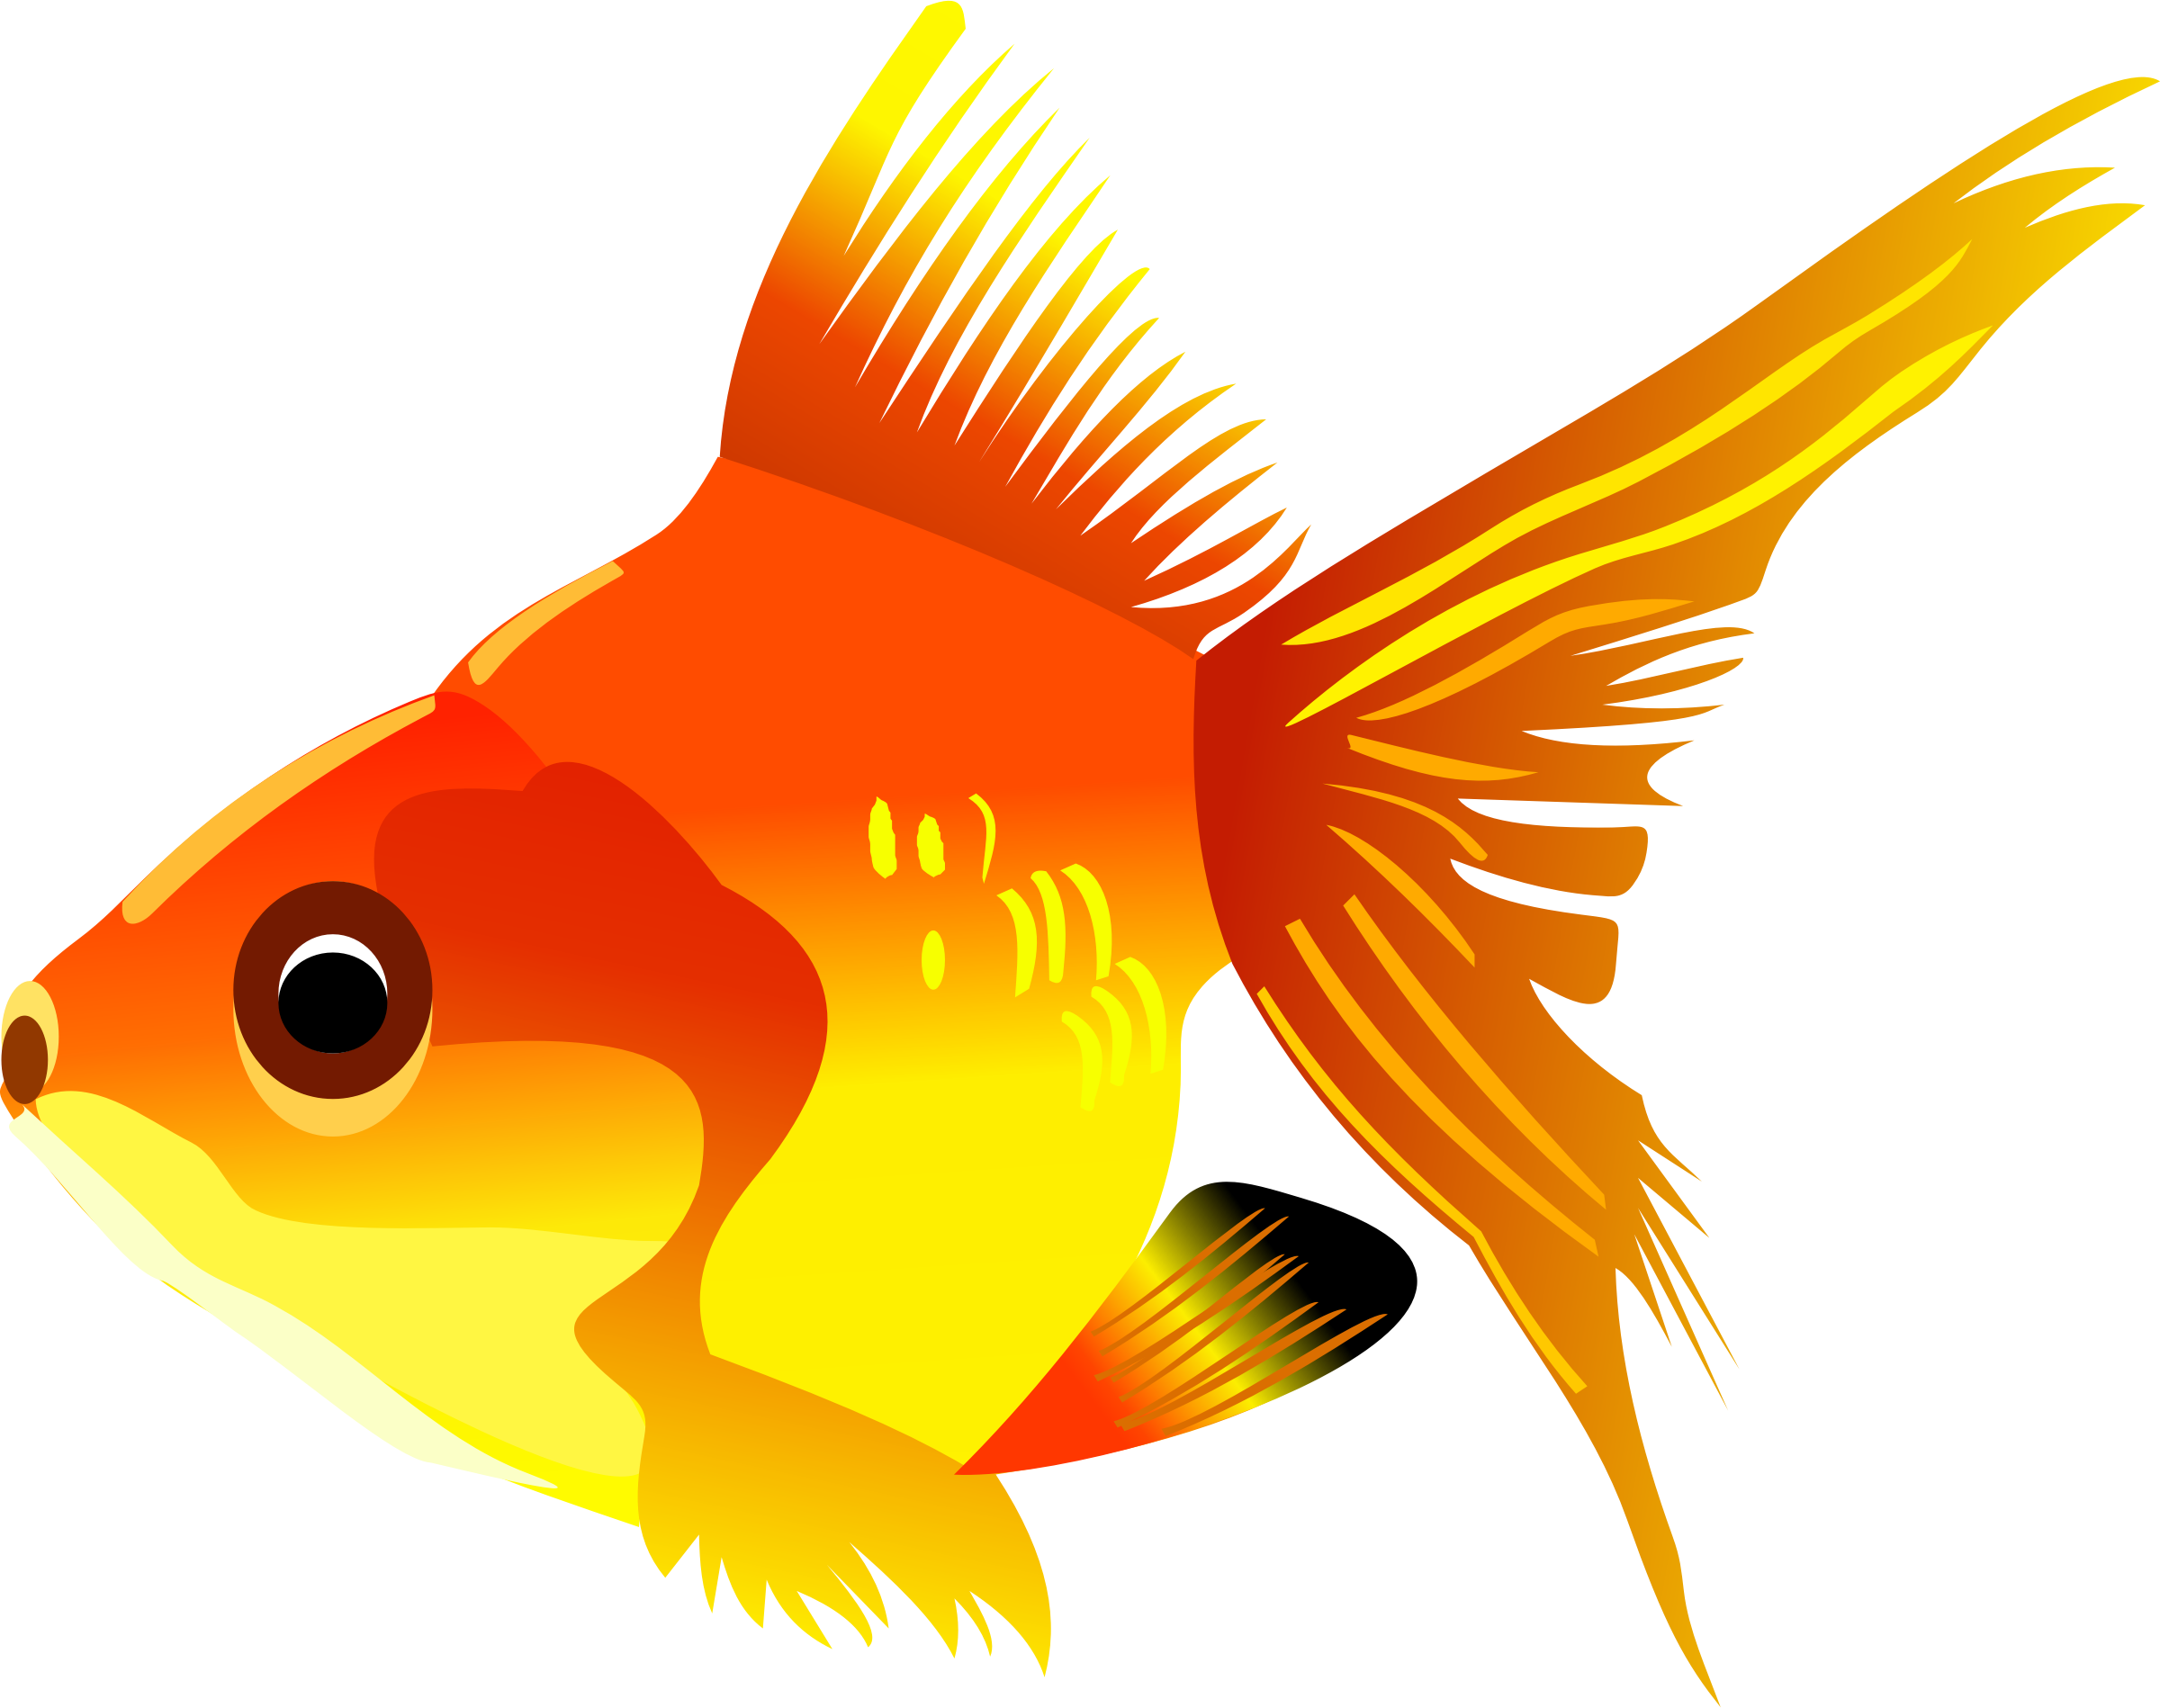 BIG IMAGE (PNG): openclipart.org/detail/181437/fish-icons-by-vectorsme-181437